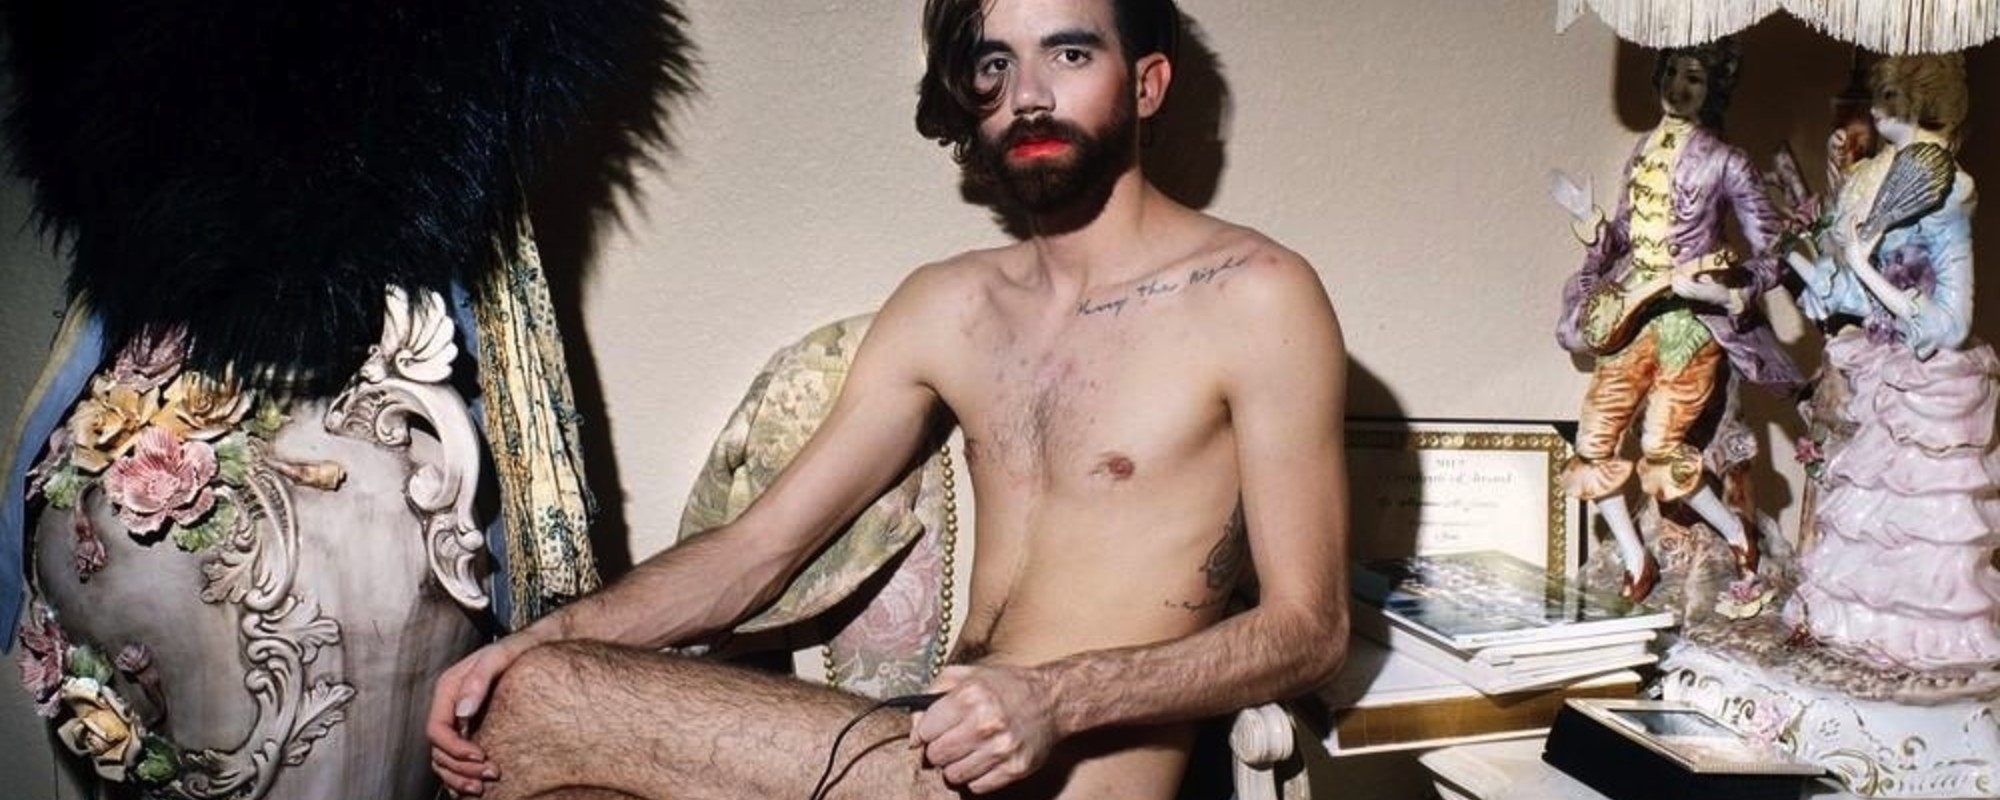 Gorgeous Photos from Inside the Cuban American Queer Scene